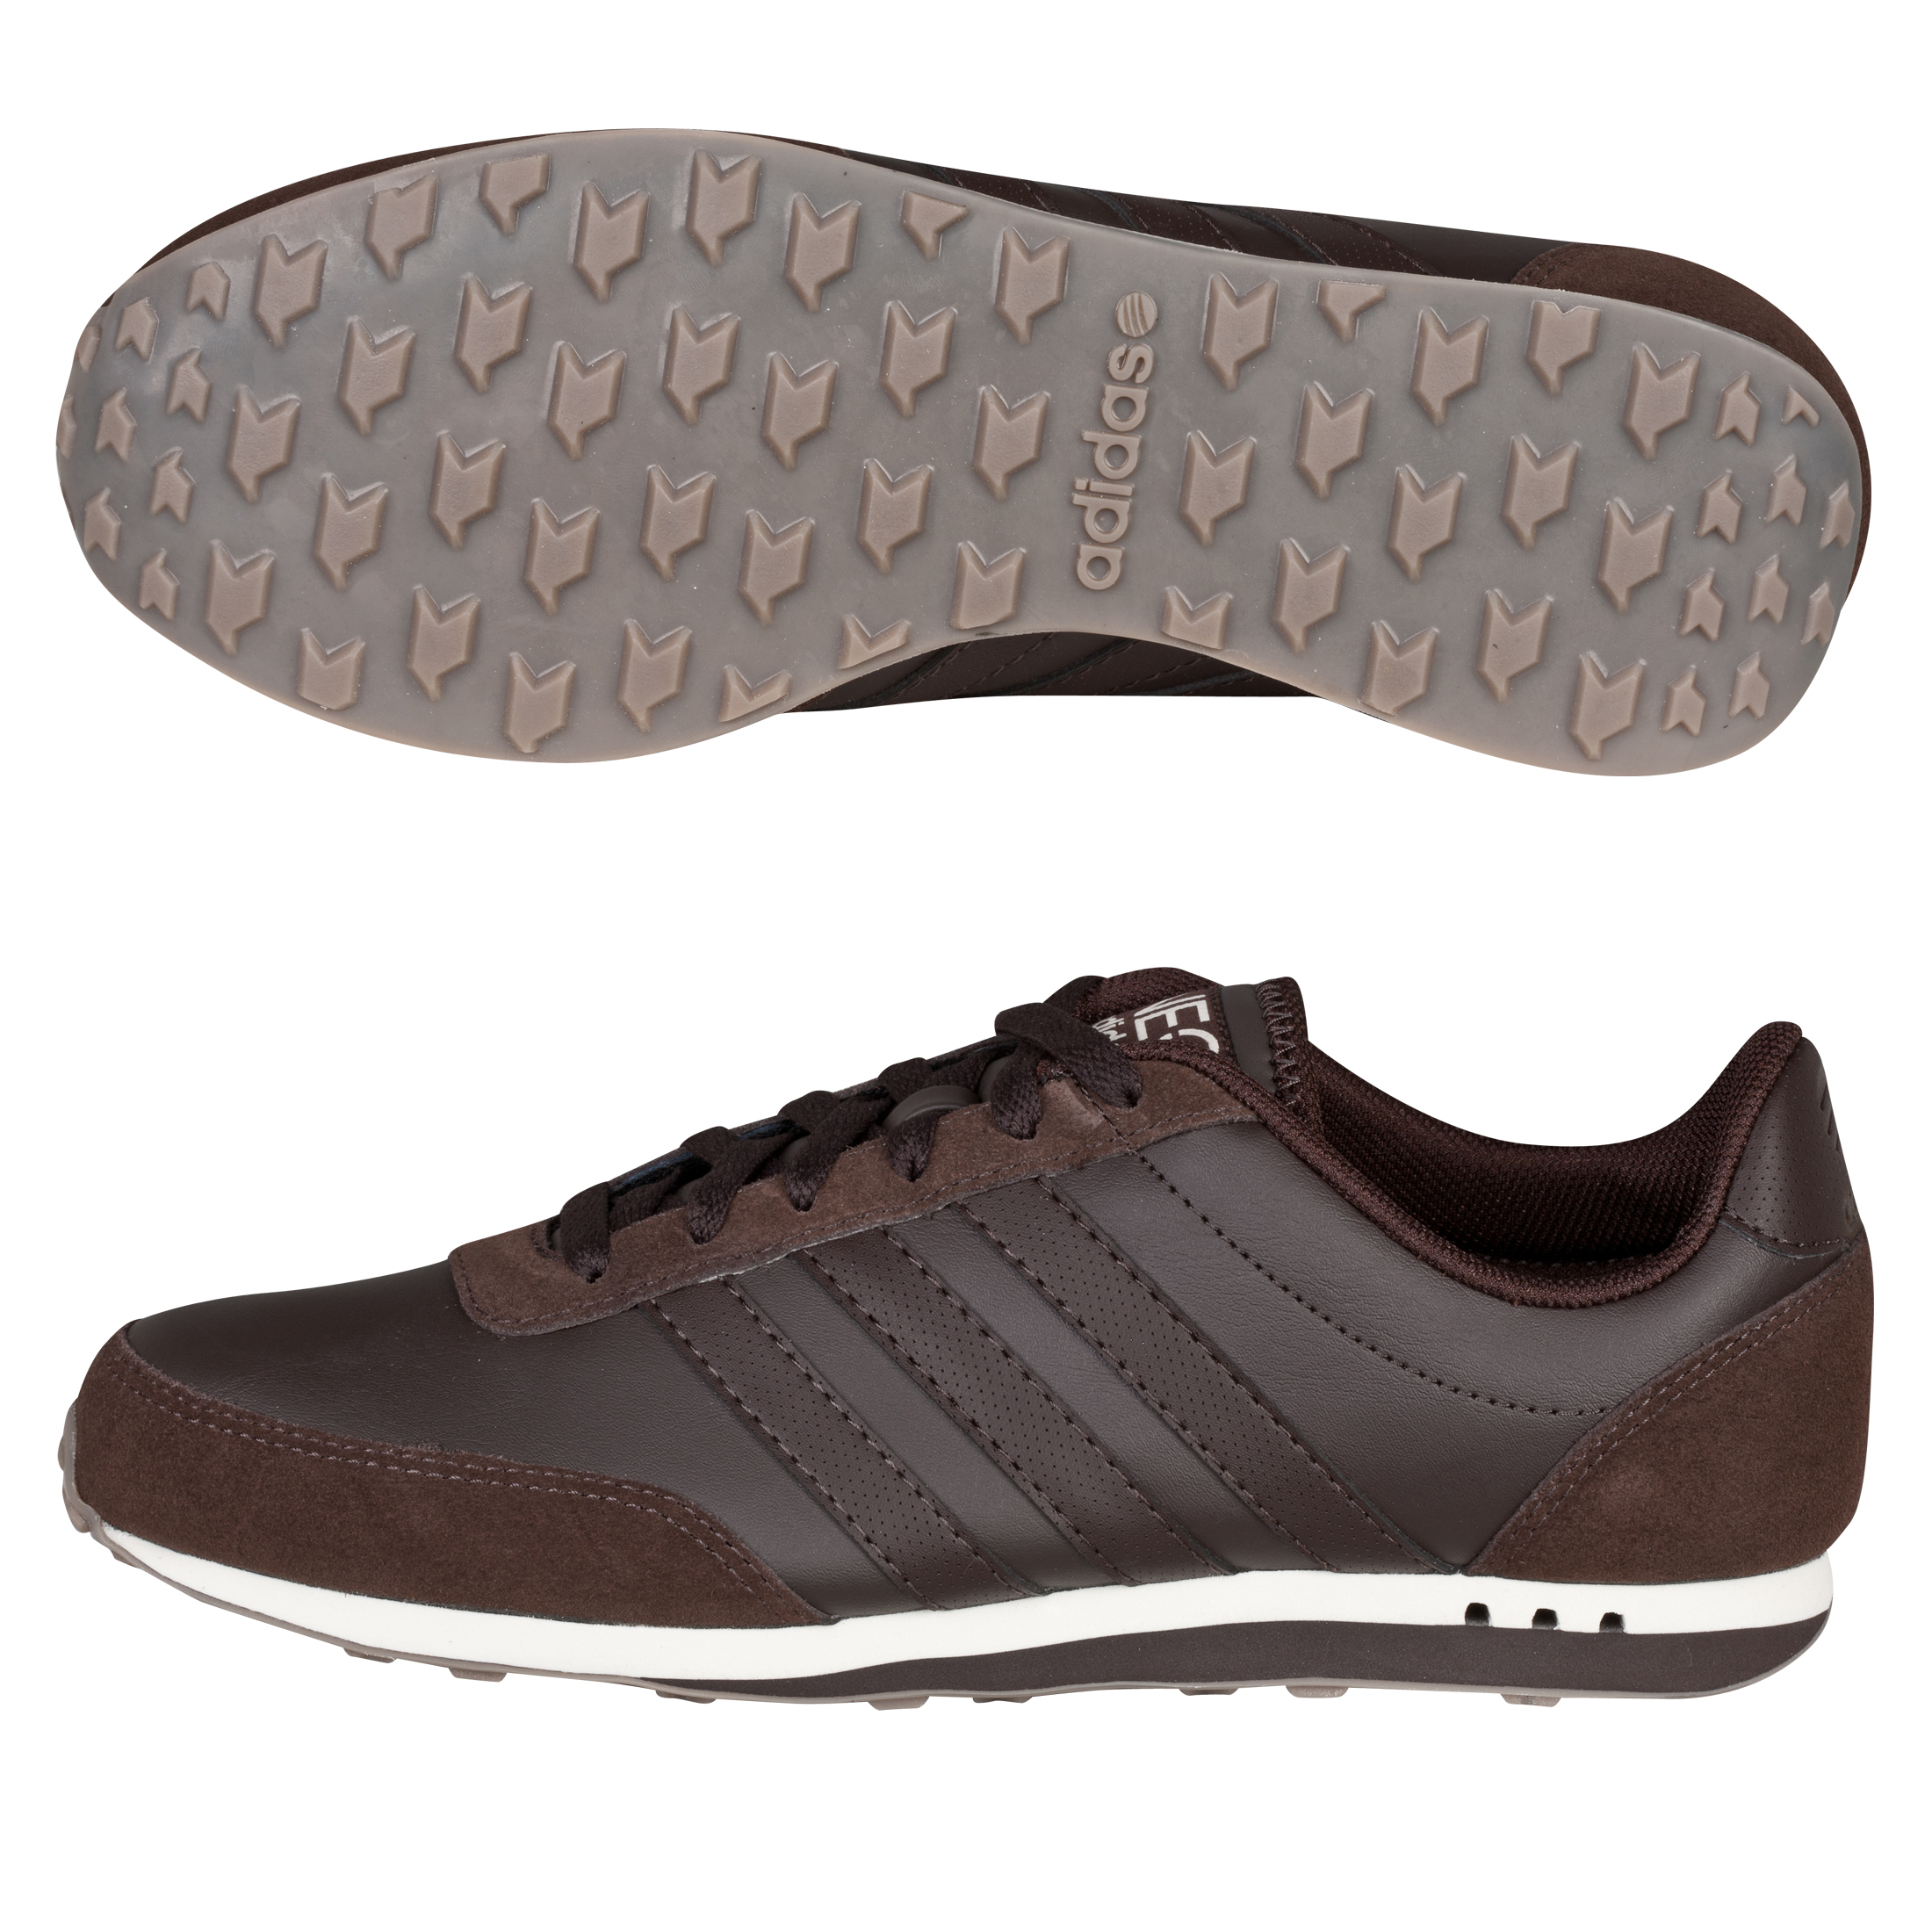 Adidas V Racer Leather Trainers - Mustang Brown / Chalk 2 / Gum5